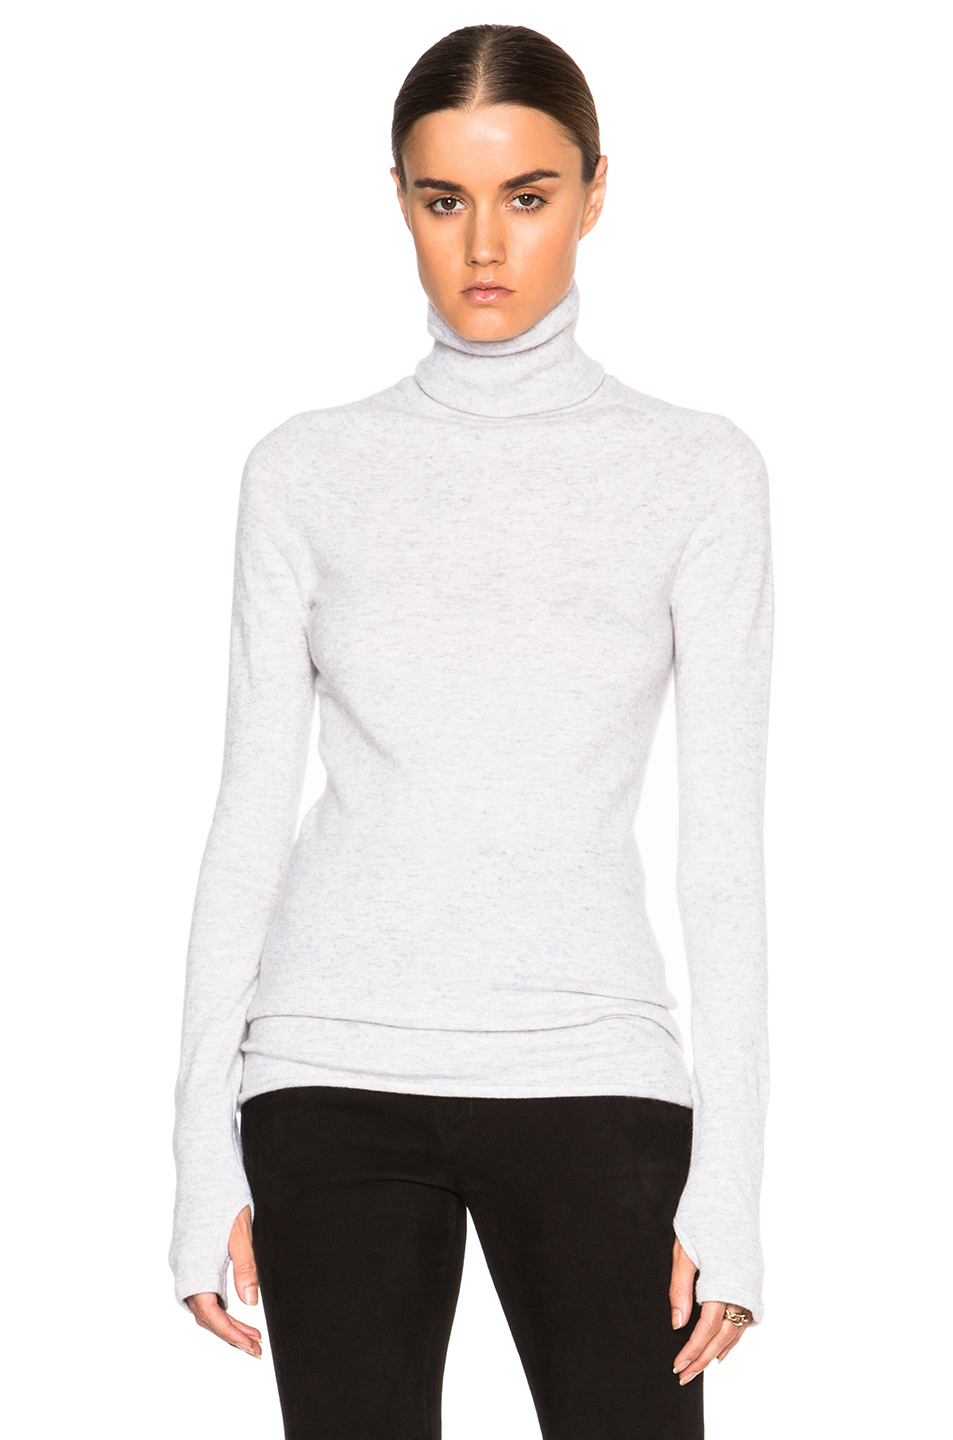 Sweater with Thumbholes | Sweaters with Thumb Loops | Thumbhole Sweater